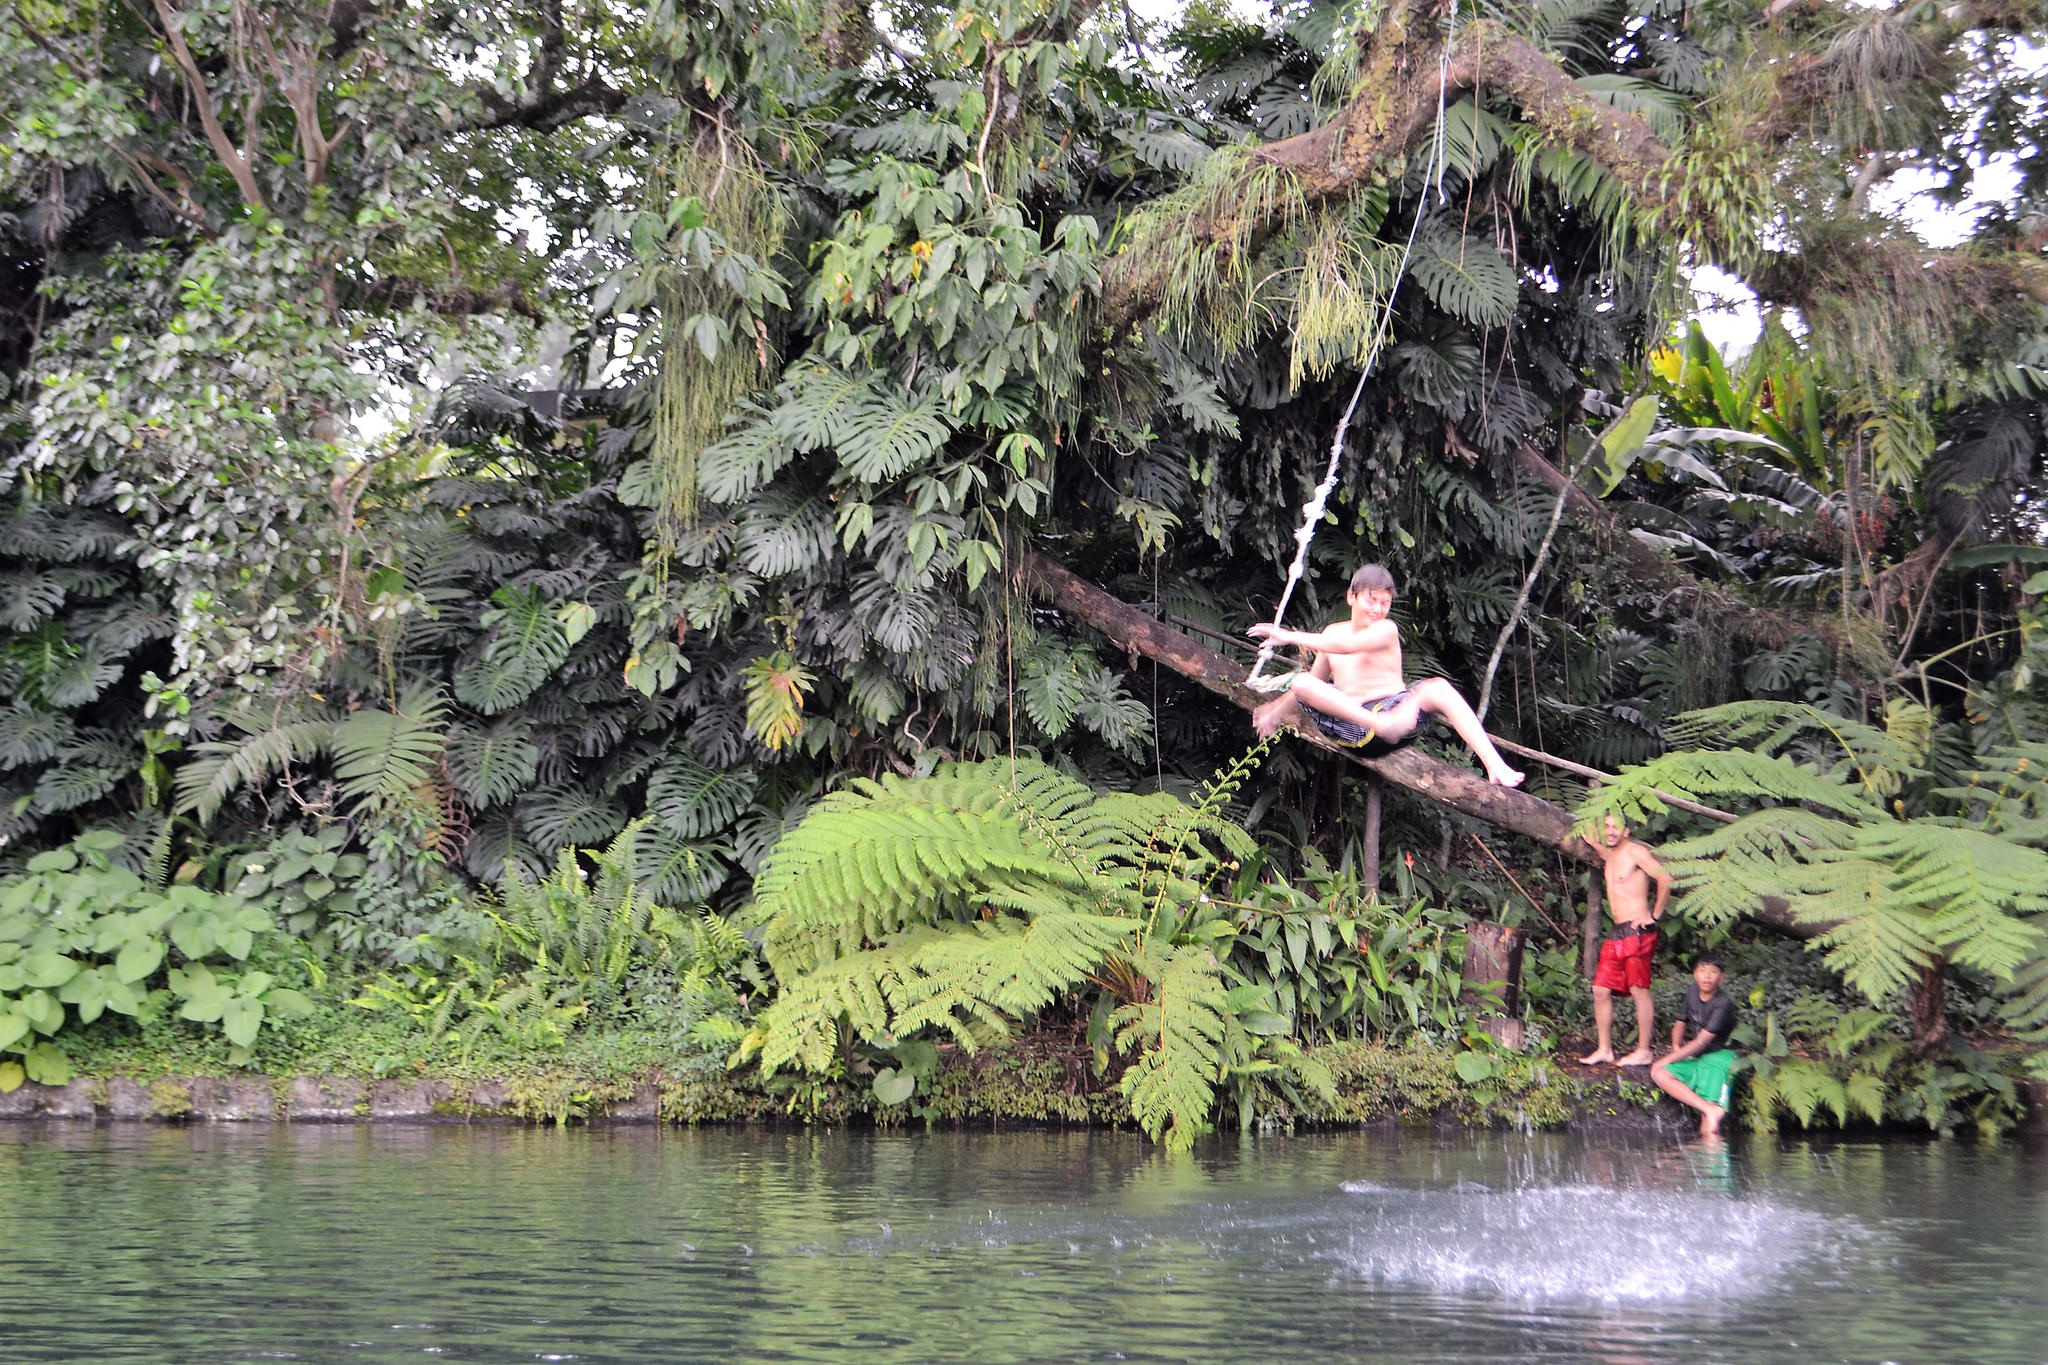 tarzan swing, kids and outdoors adventures